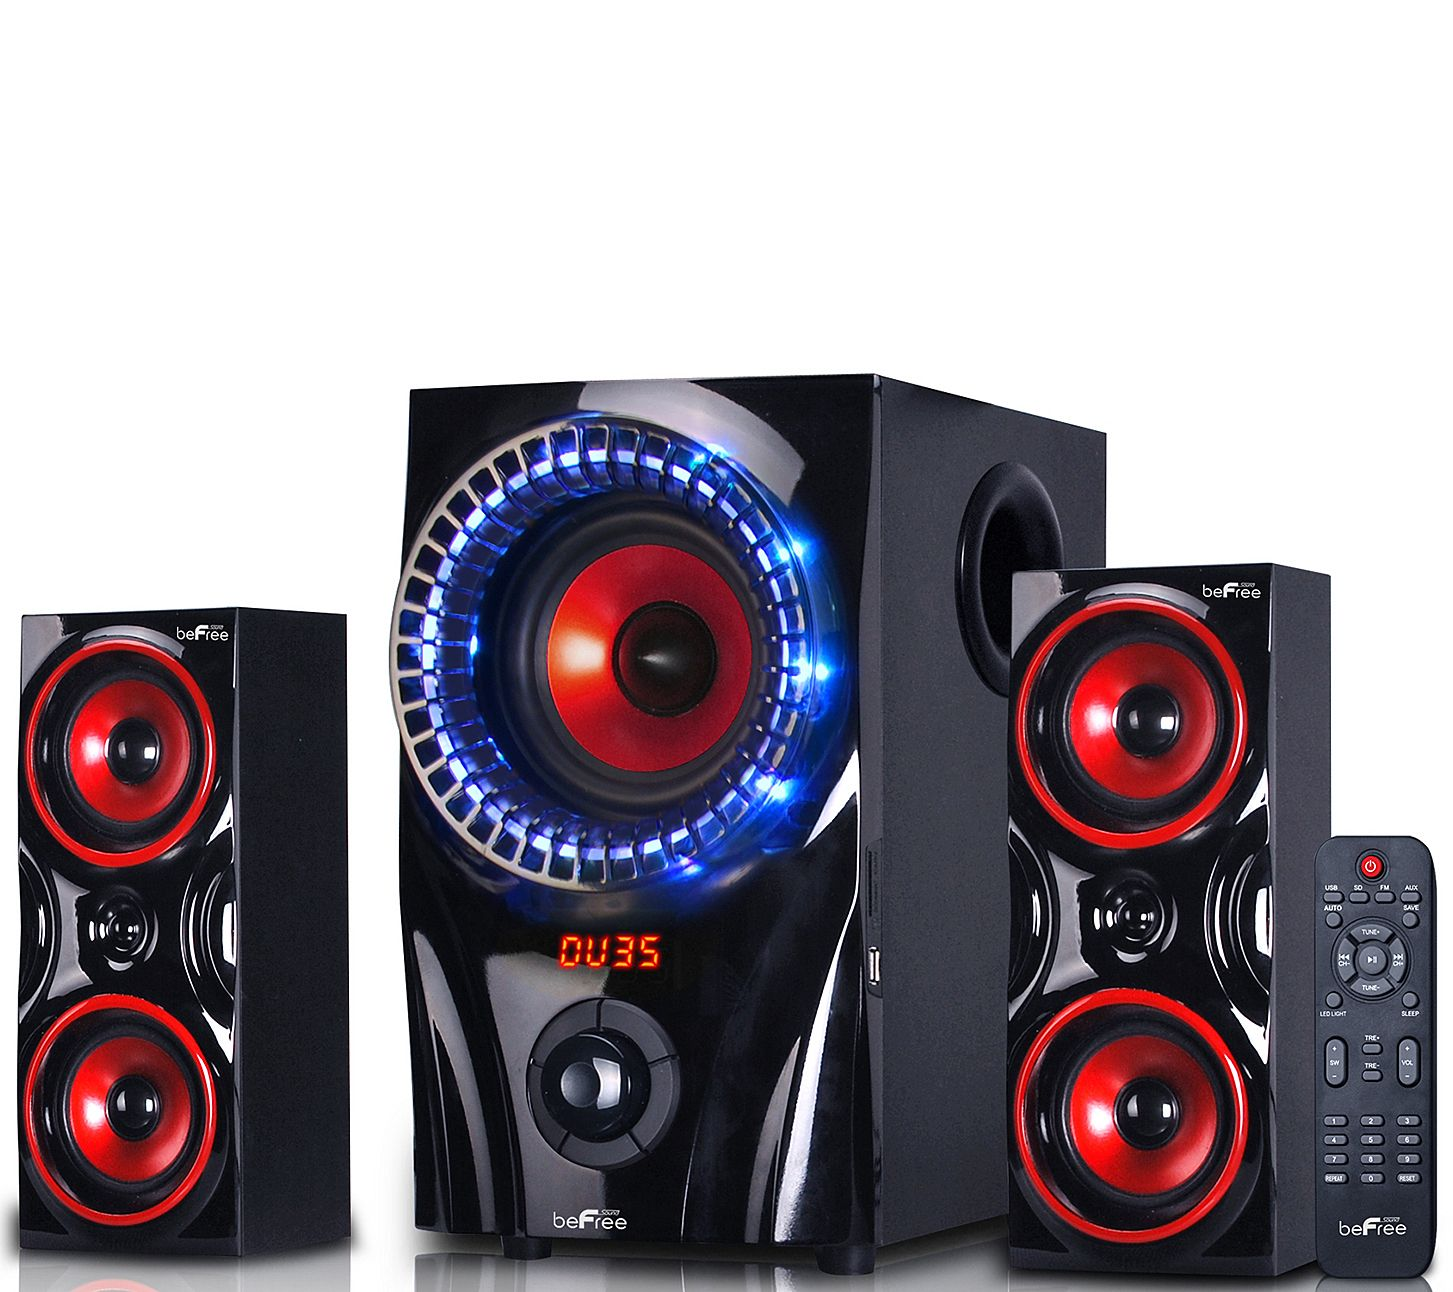 Befree Sound 99x 2 1 Channel Surround Sound Bluetooth Speaker Qvc Com